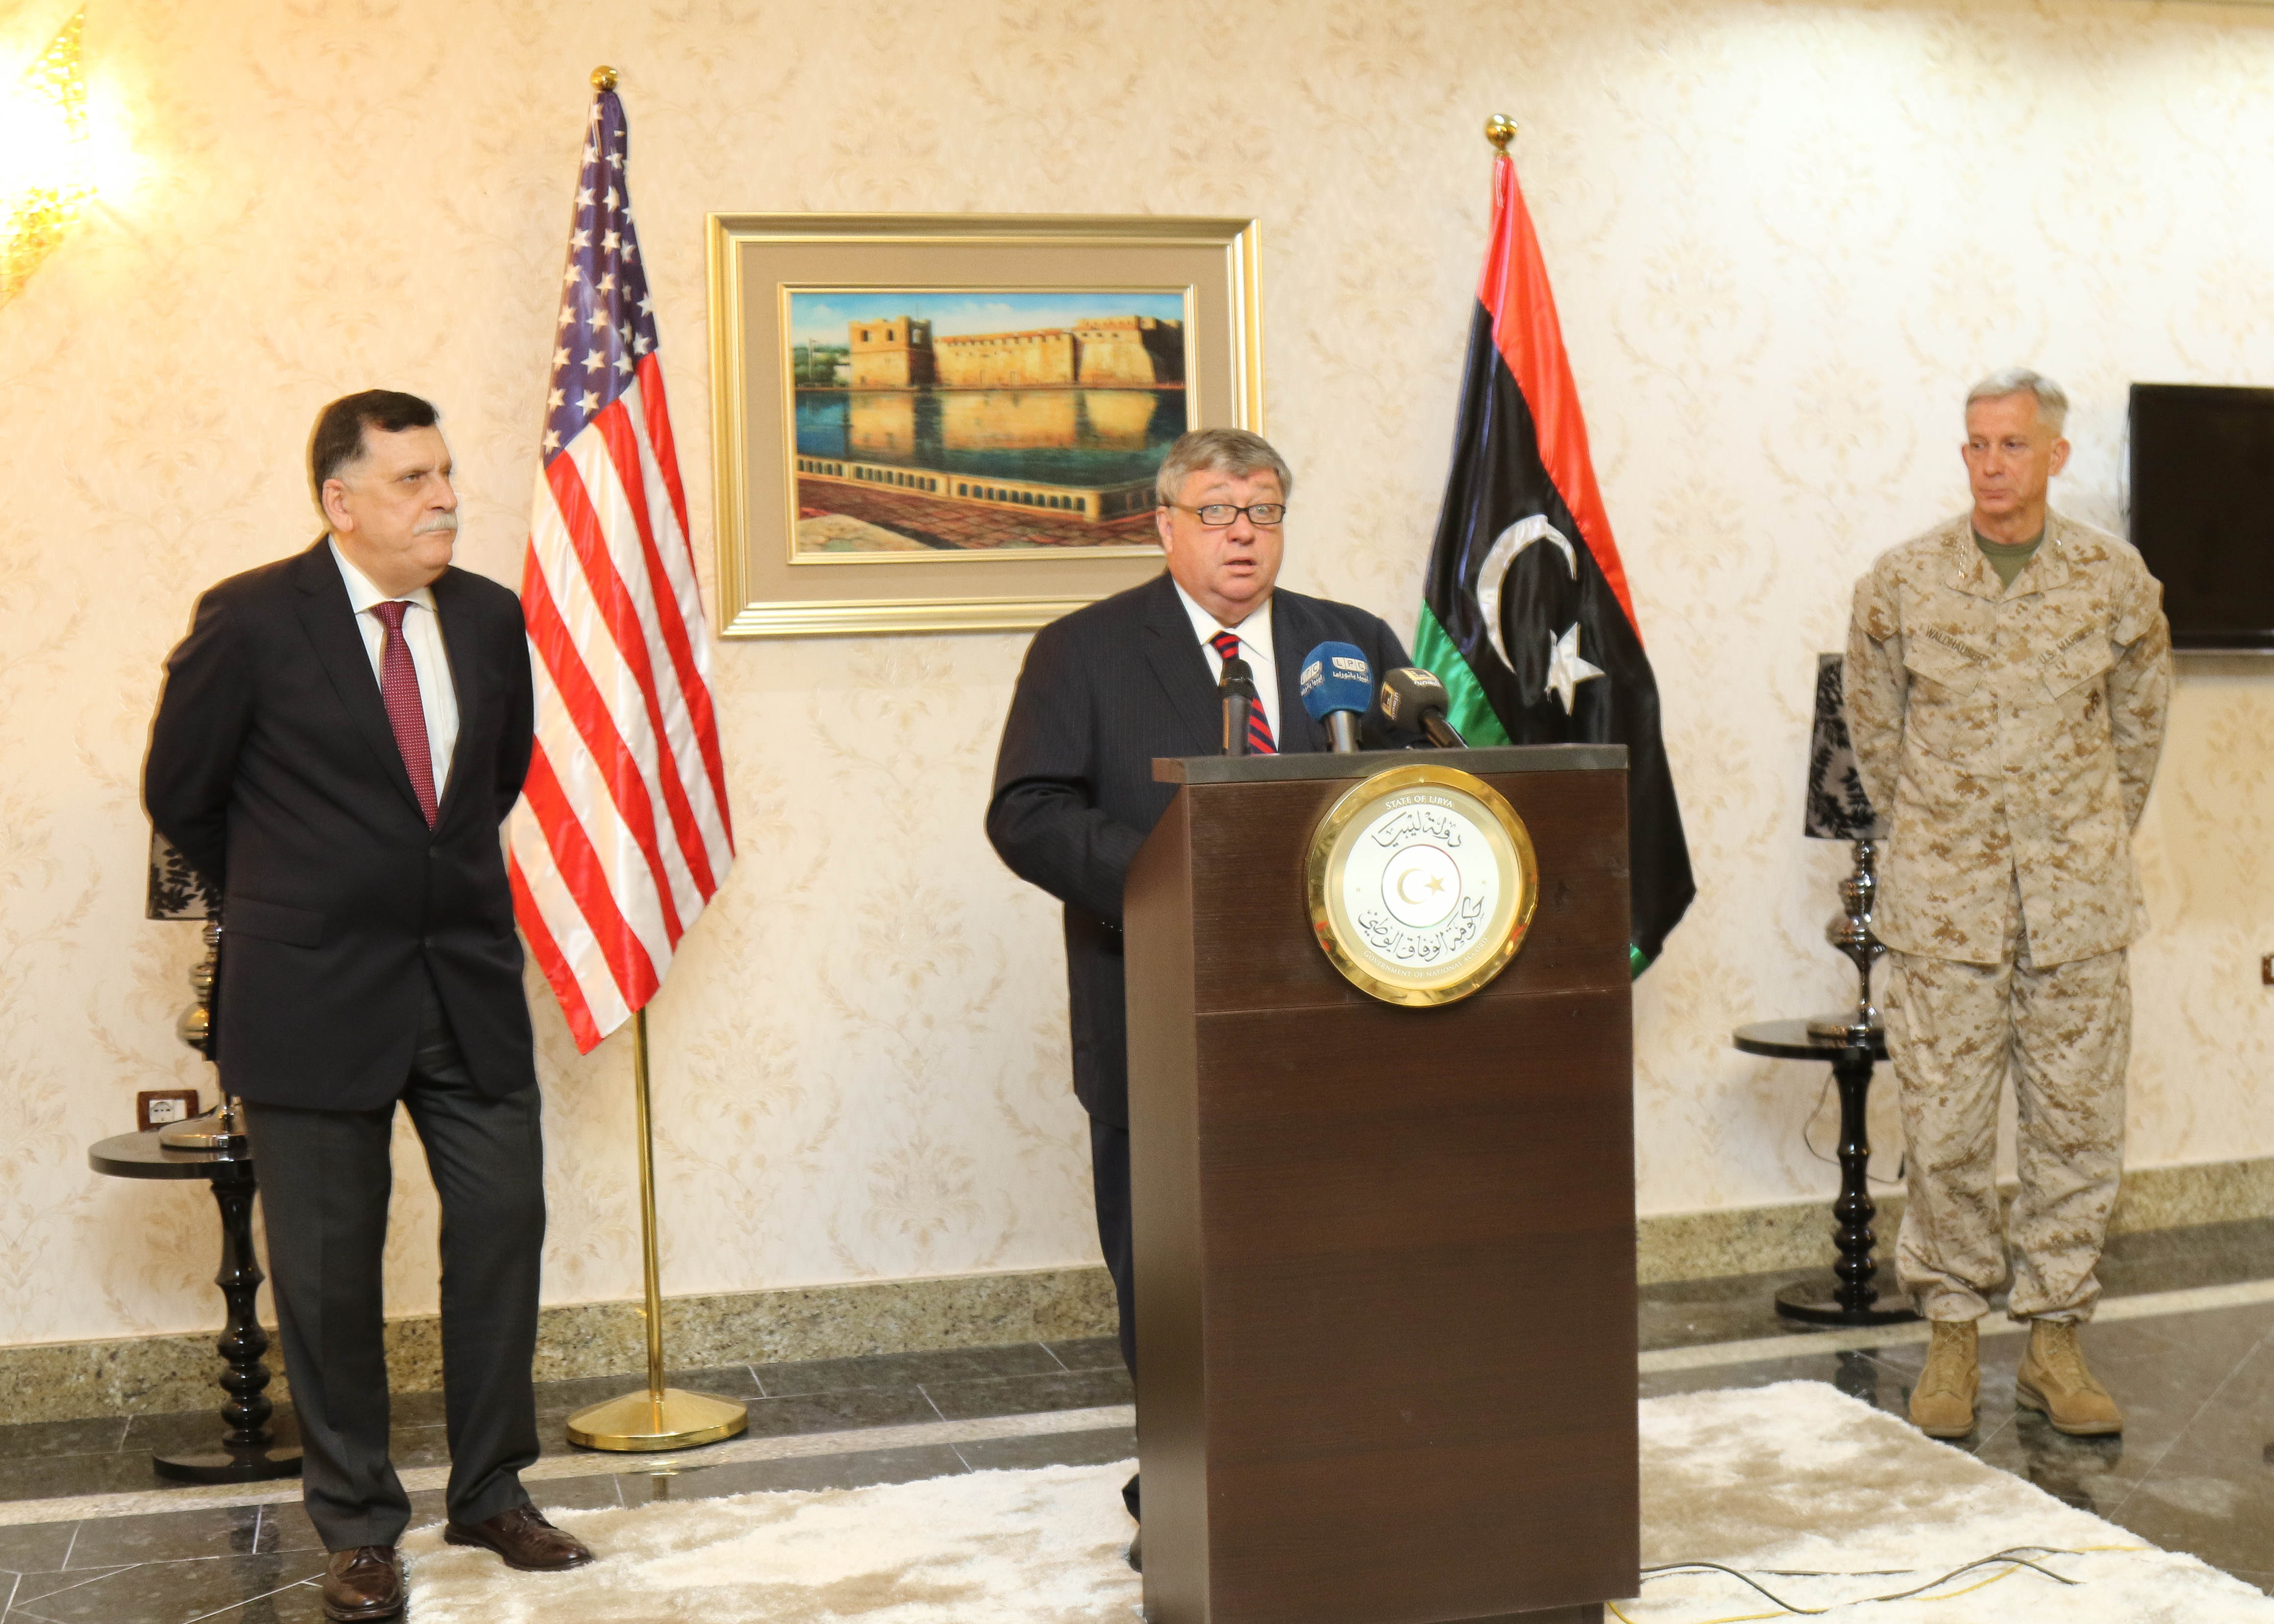 Amb, Peter Bodde, U.S. Ambassador to Libya spoke during a media engagement hosted by the Prime Minister of Libya's Unity Government Fayez al -Sarraj during a recent visit to Tripoli, Libya May 23, 2017. Bodde was joined by U.S. Marine Corps Gen. Thomas D. Walhauser, Commander, U.S. Africa Command. This marks the first time a a high ranking U.S. military official has been in Libya since 2014.